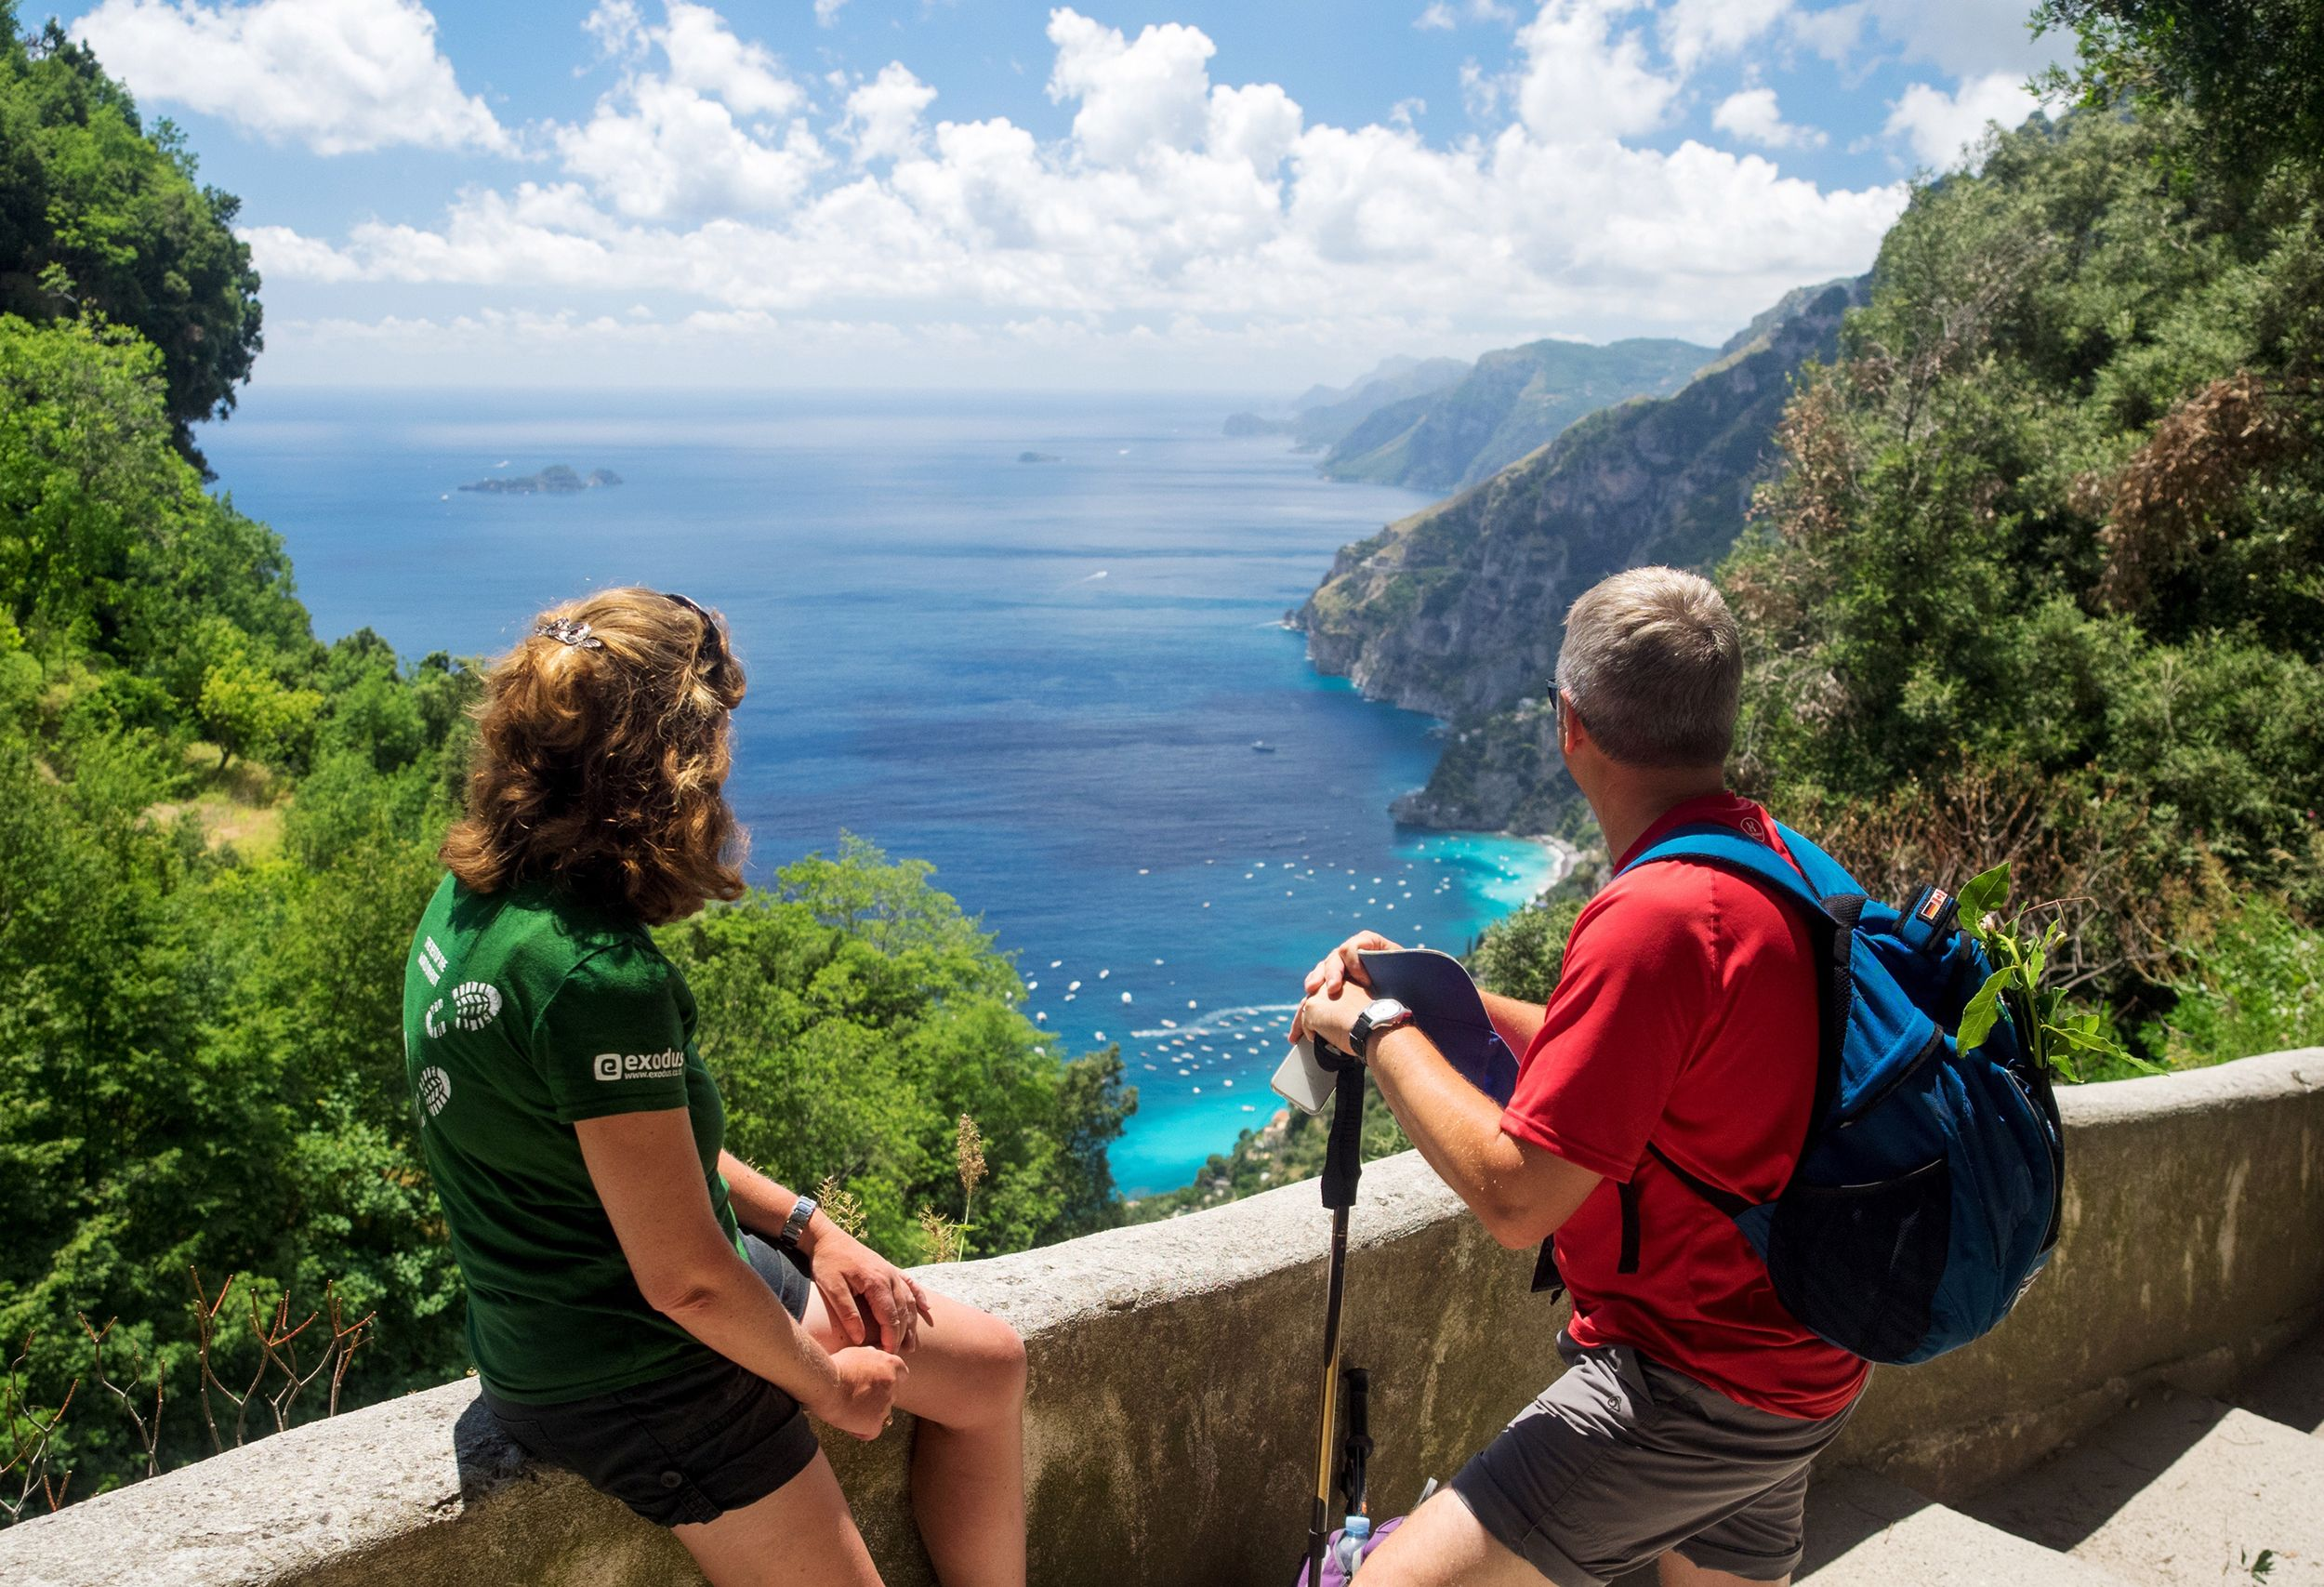 A walking holiday in Amalfi? It's the perfect way to explore Italy's glamorous coastline